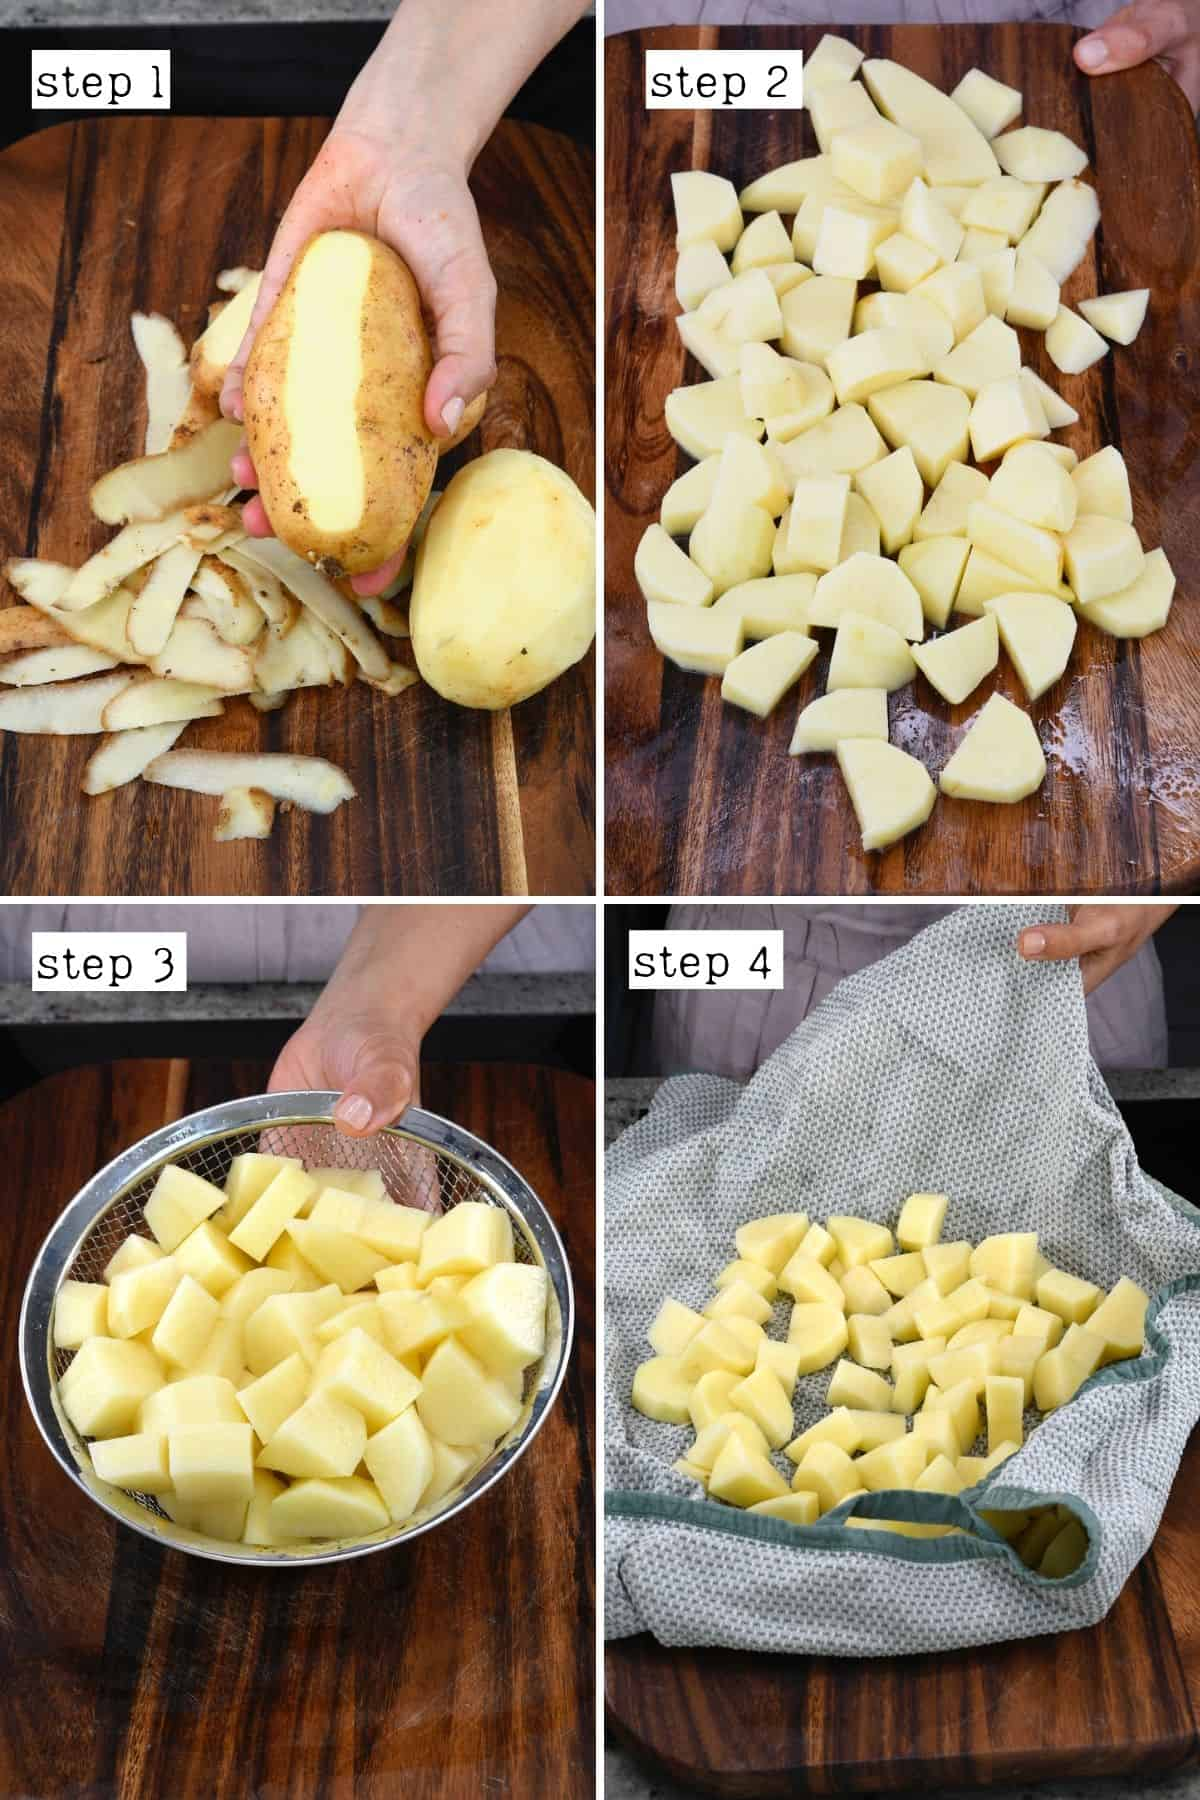 Steps for chopping potatoes